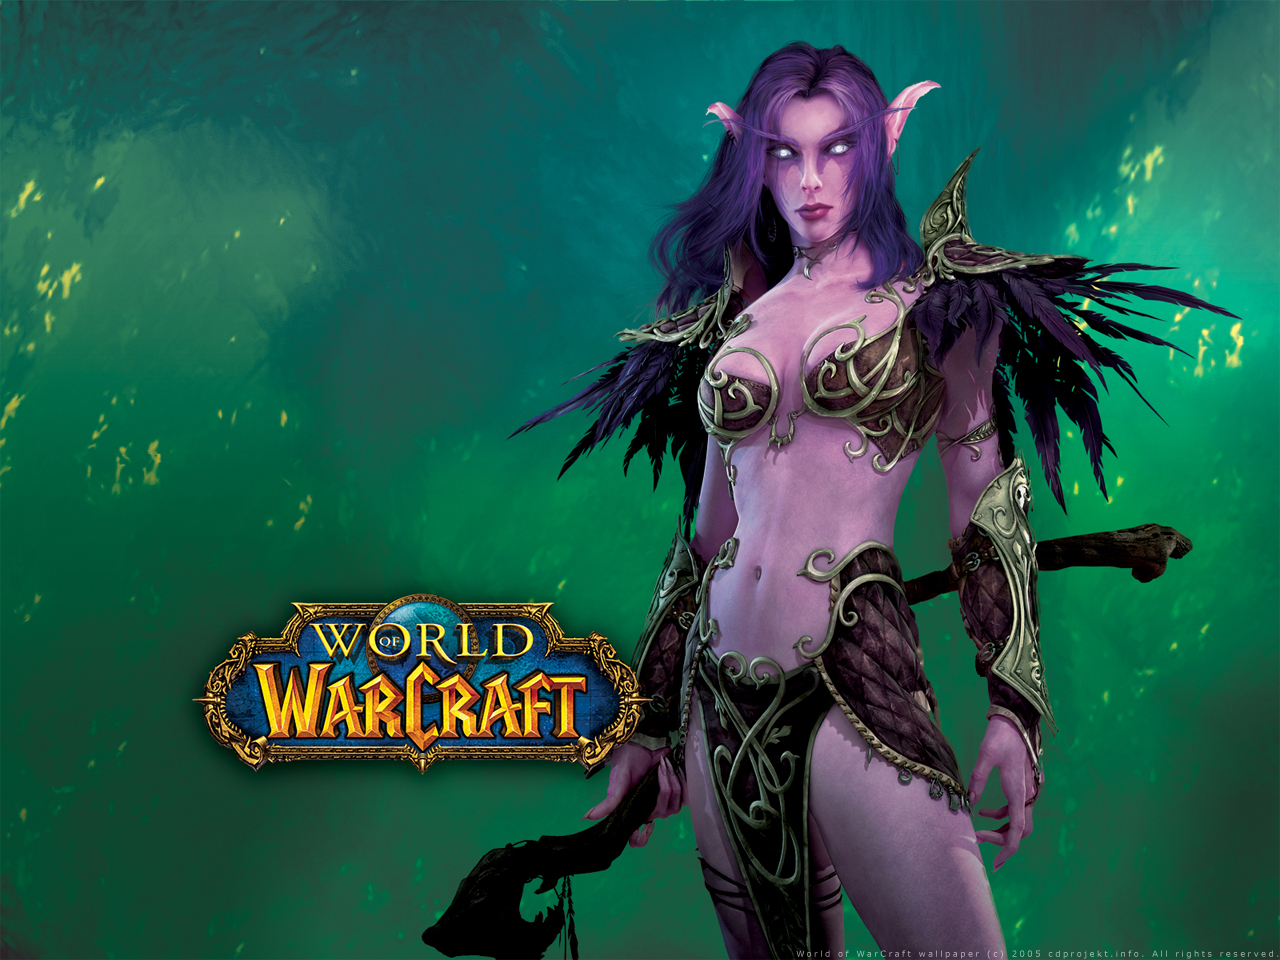 Nightelf boobies 3d exposed tube